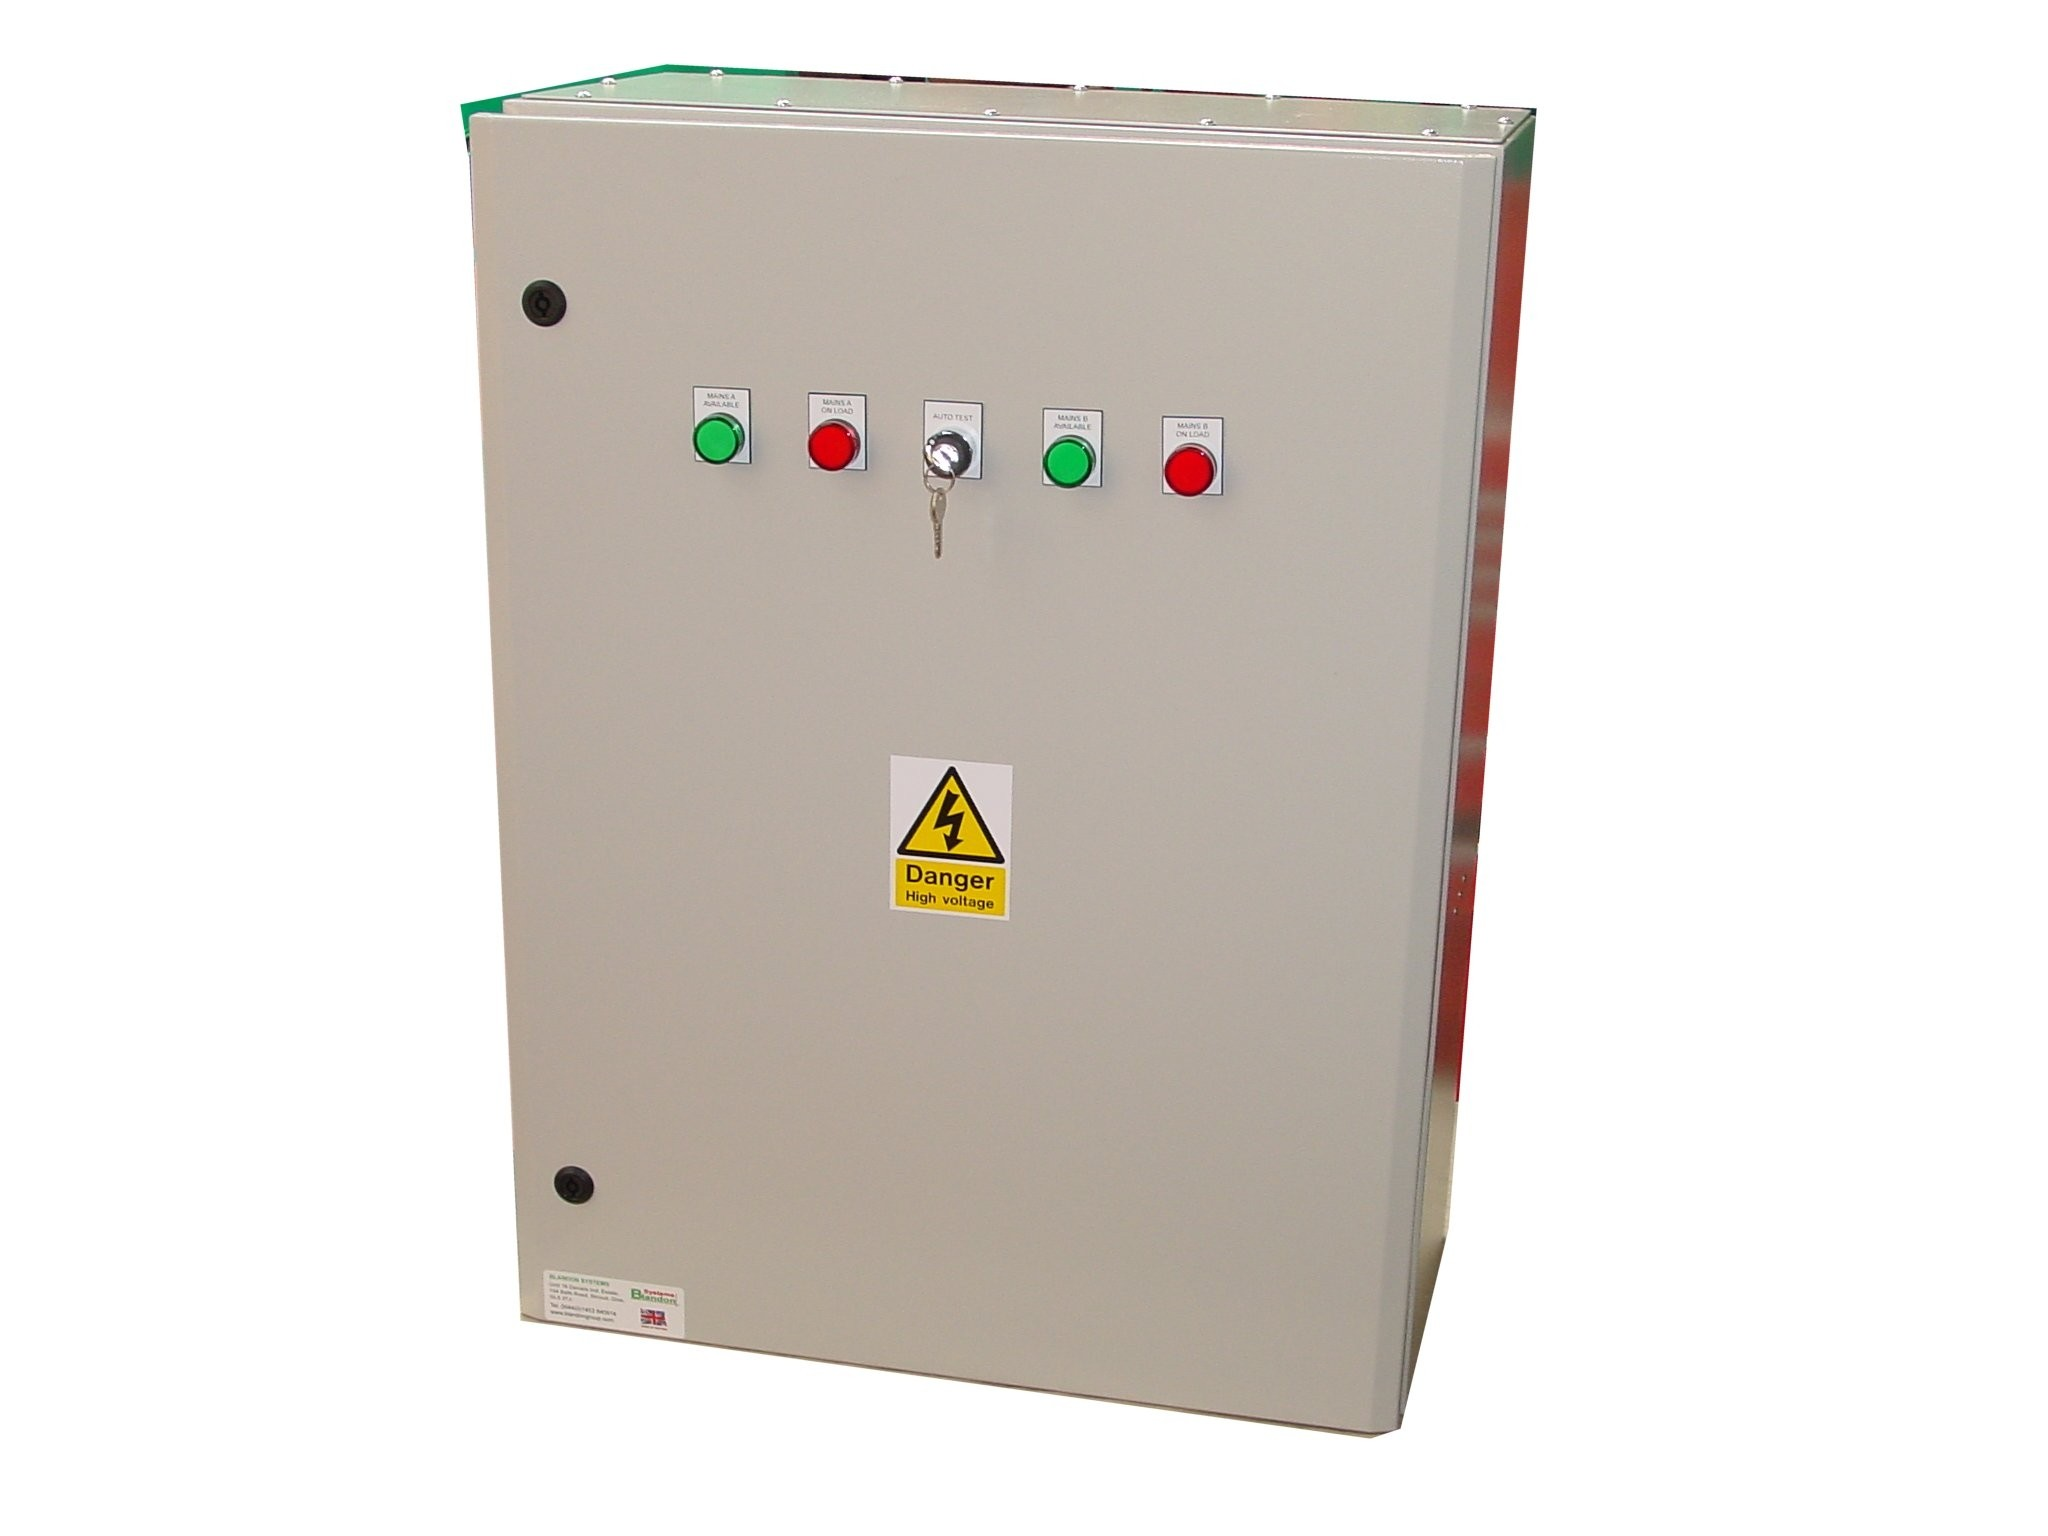 250A ATS 3 Phase Mains-Mains 400V, UVR Controlled, ABB Contactors